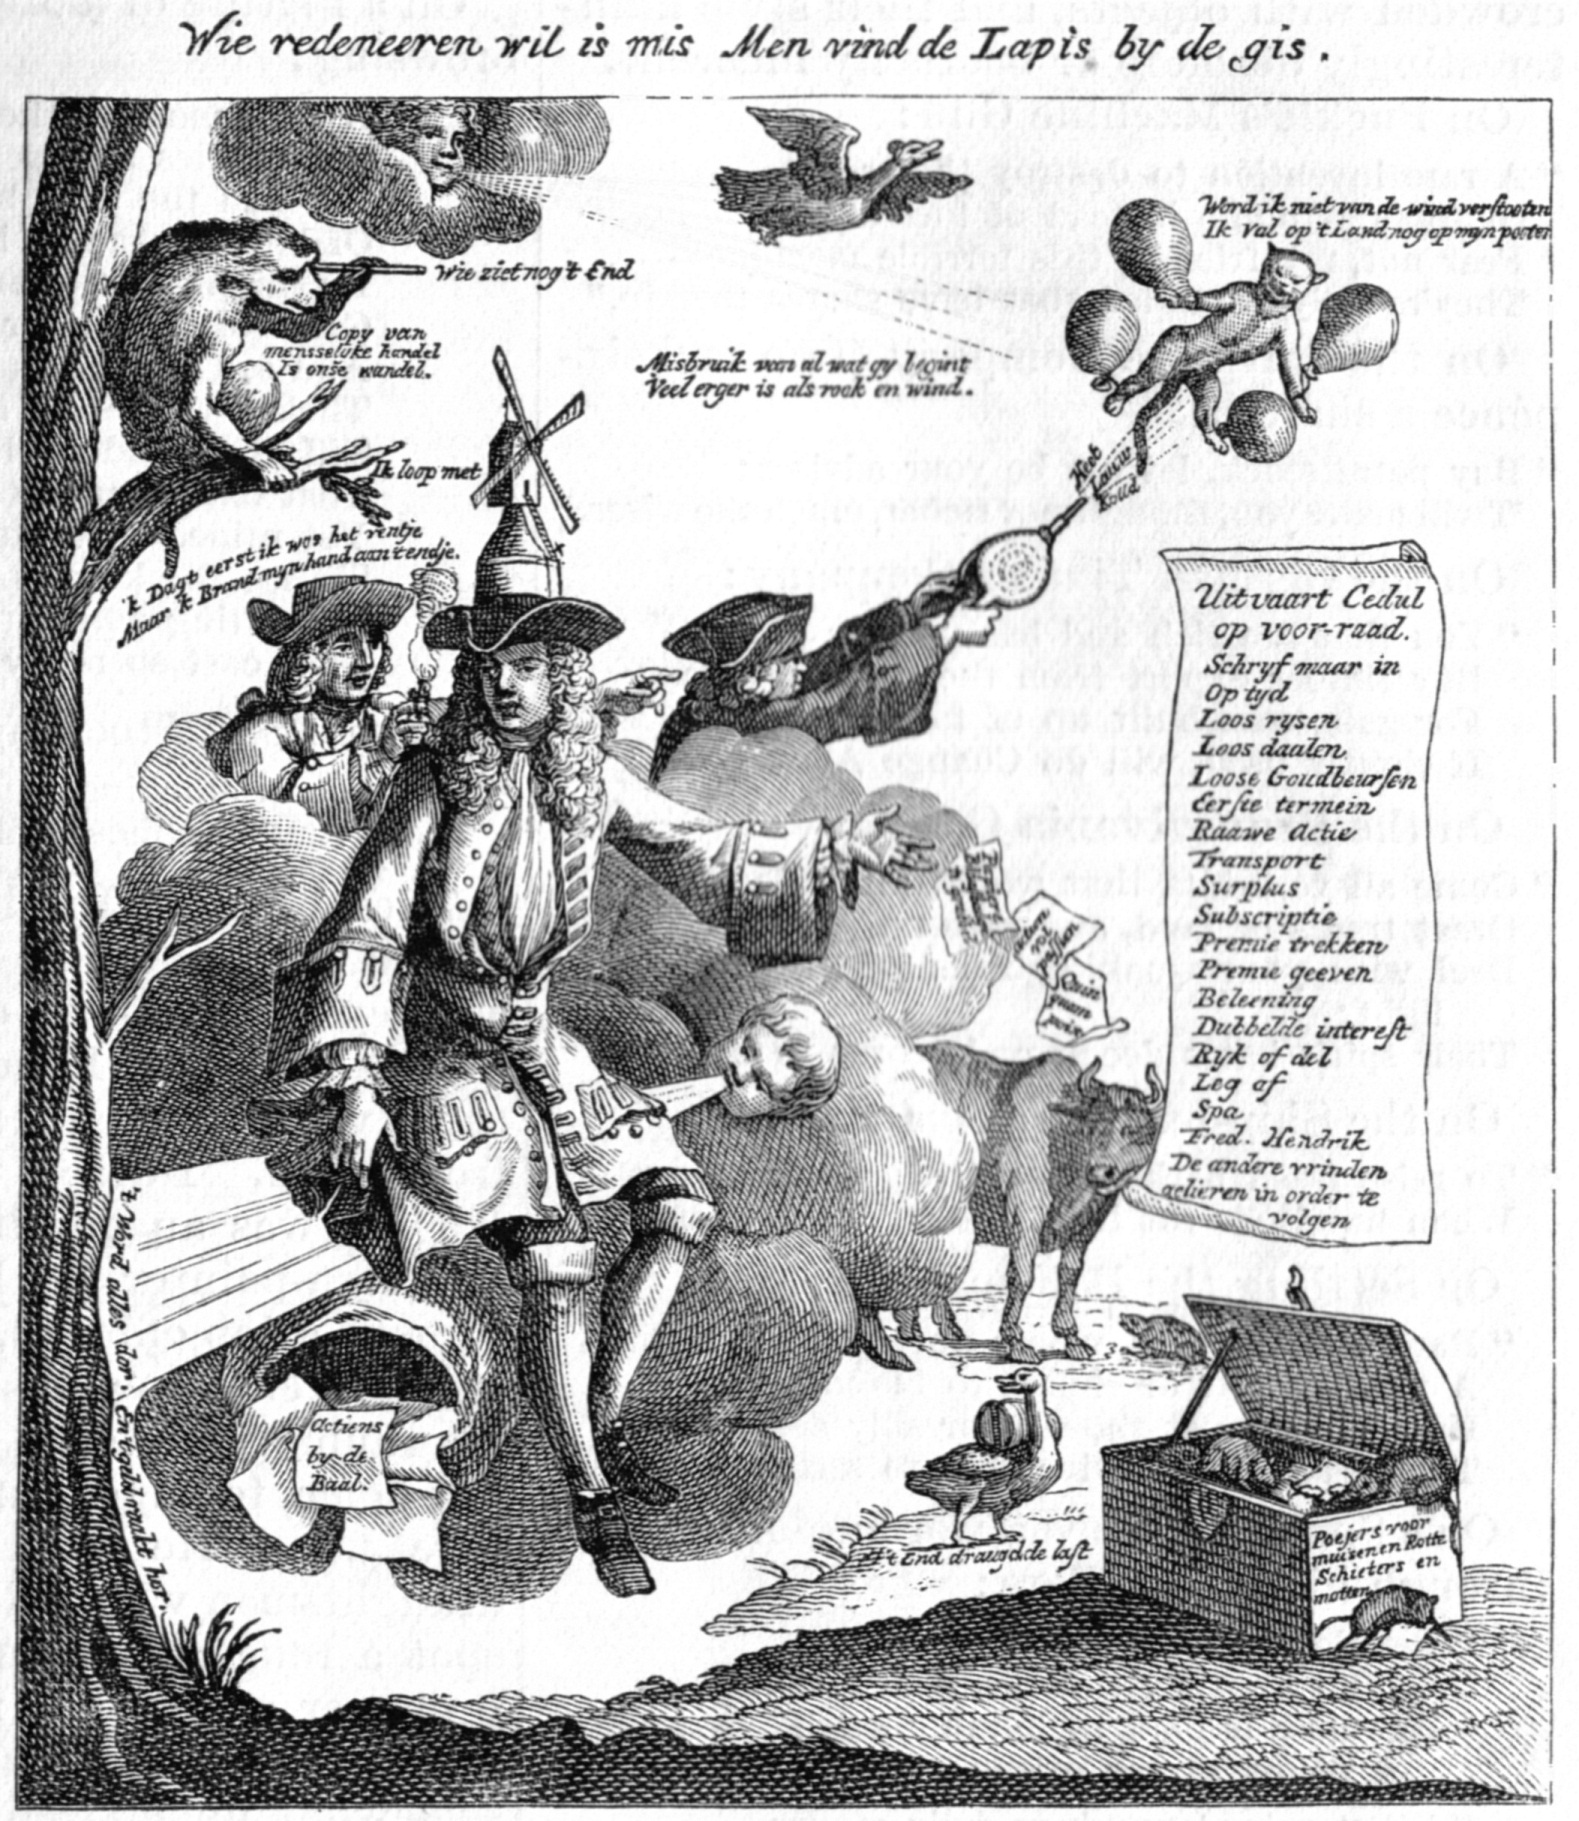 JohnLawcartoon 1720